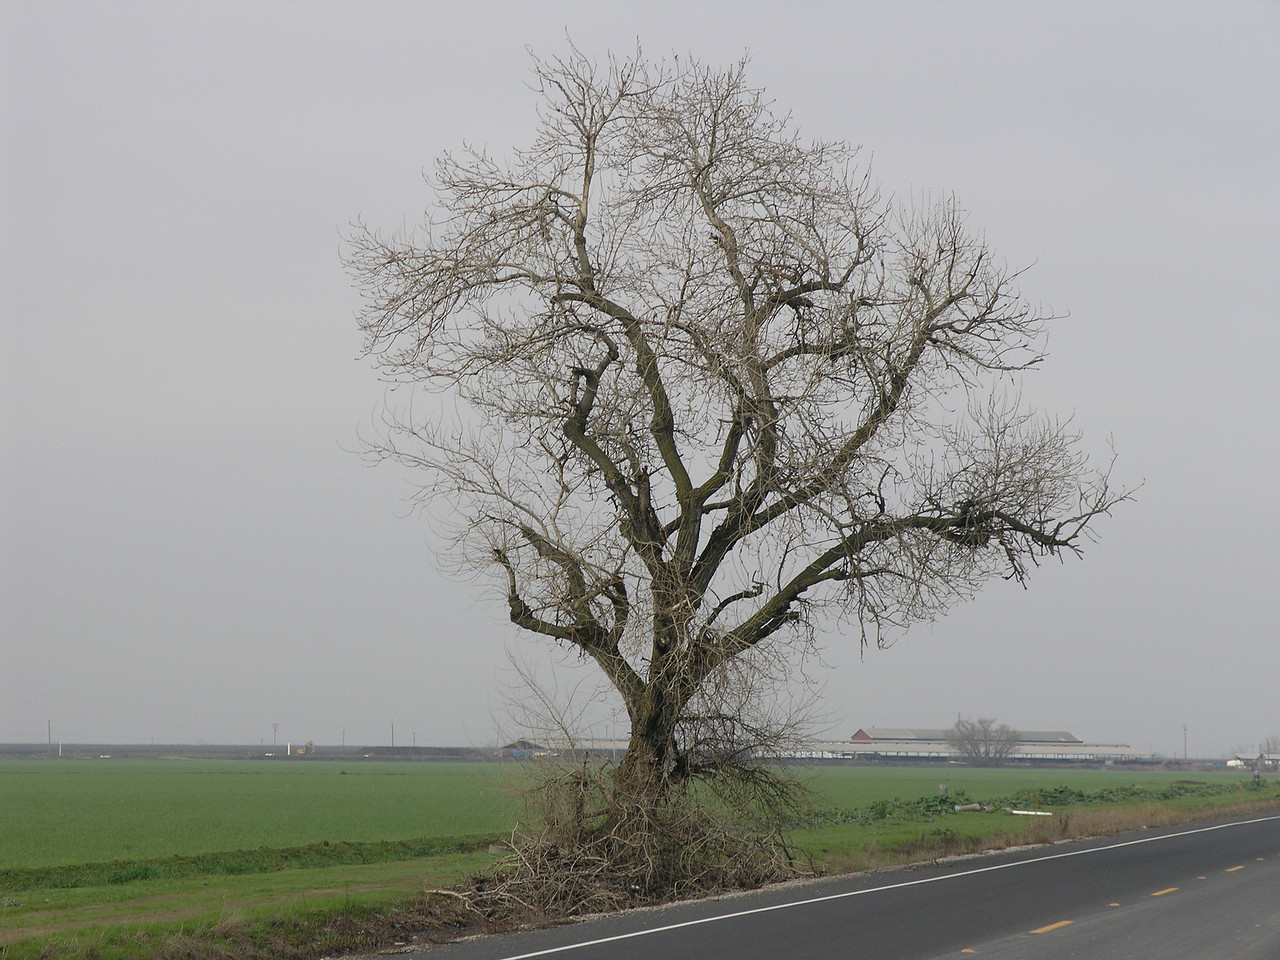 A poplar growing along the road .